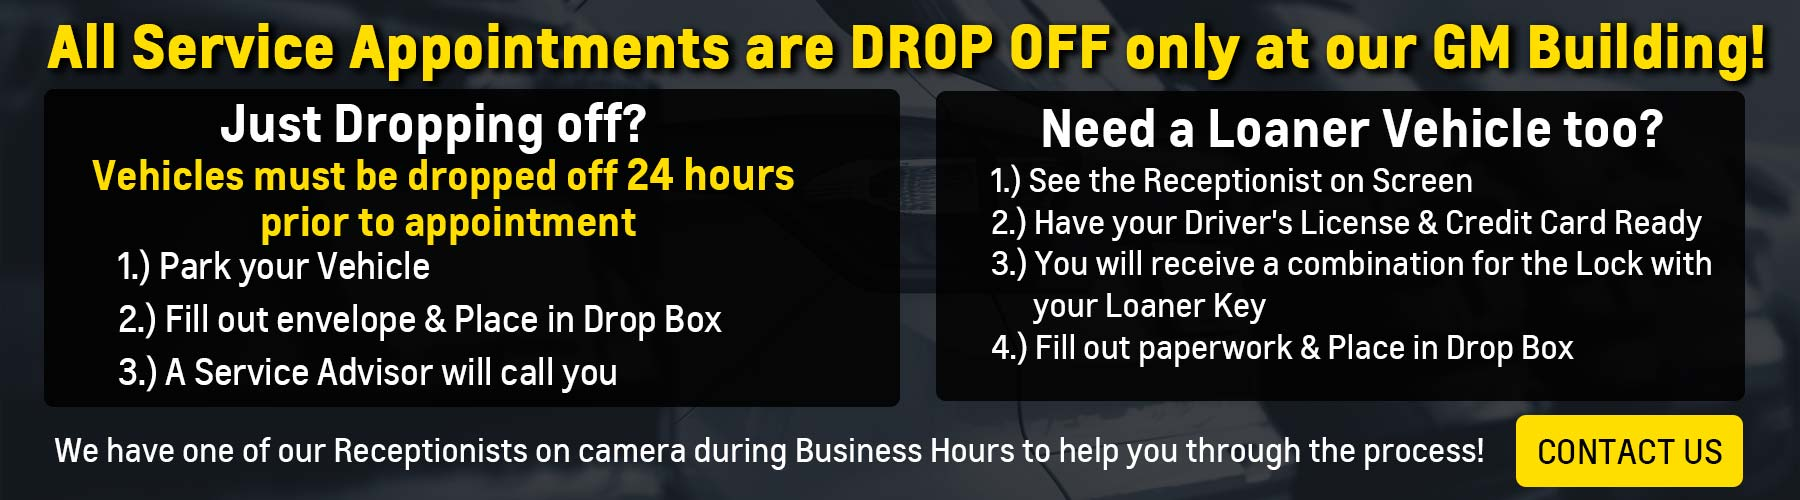 Service Appointments are Drop Off Only